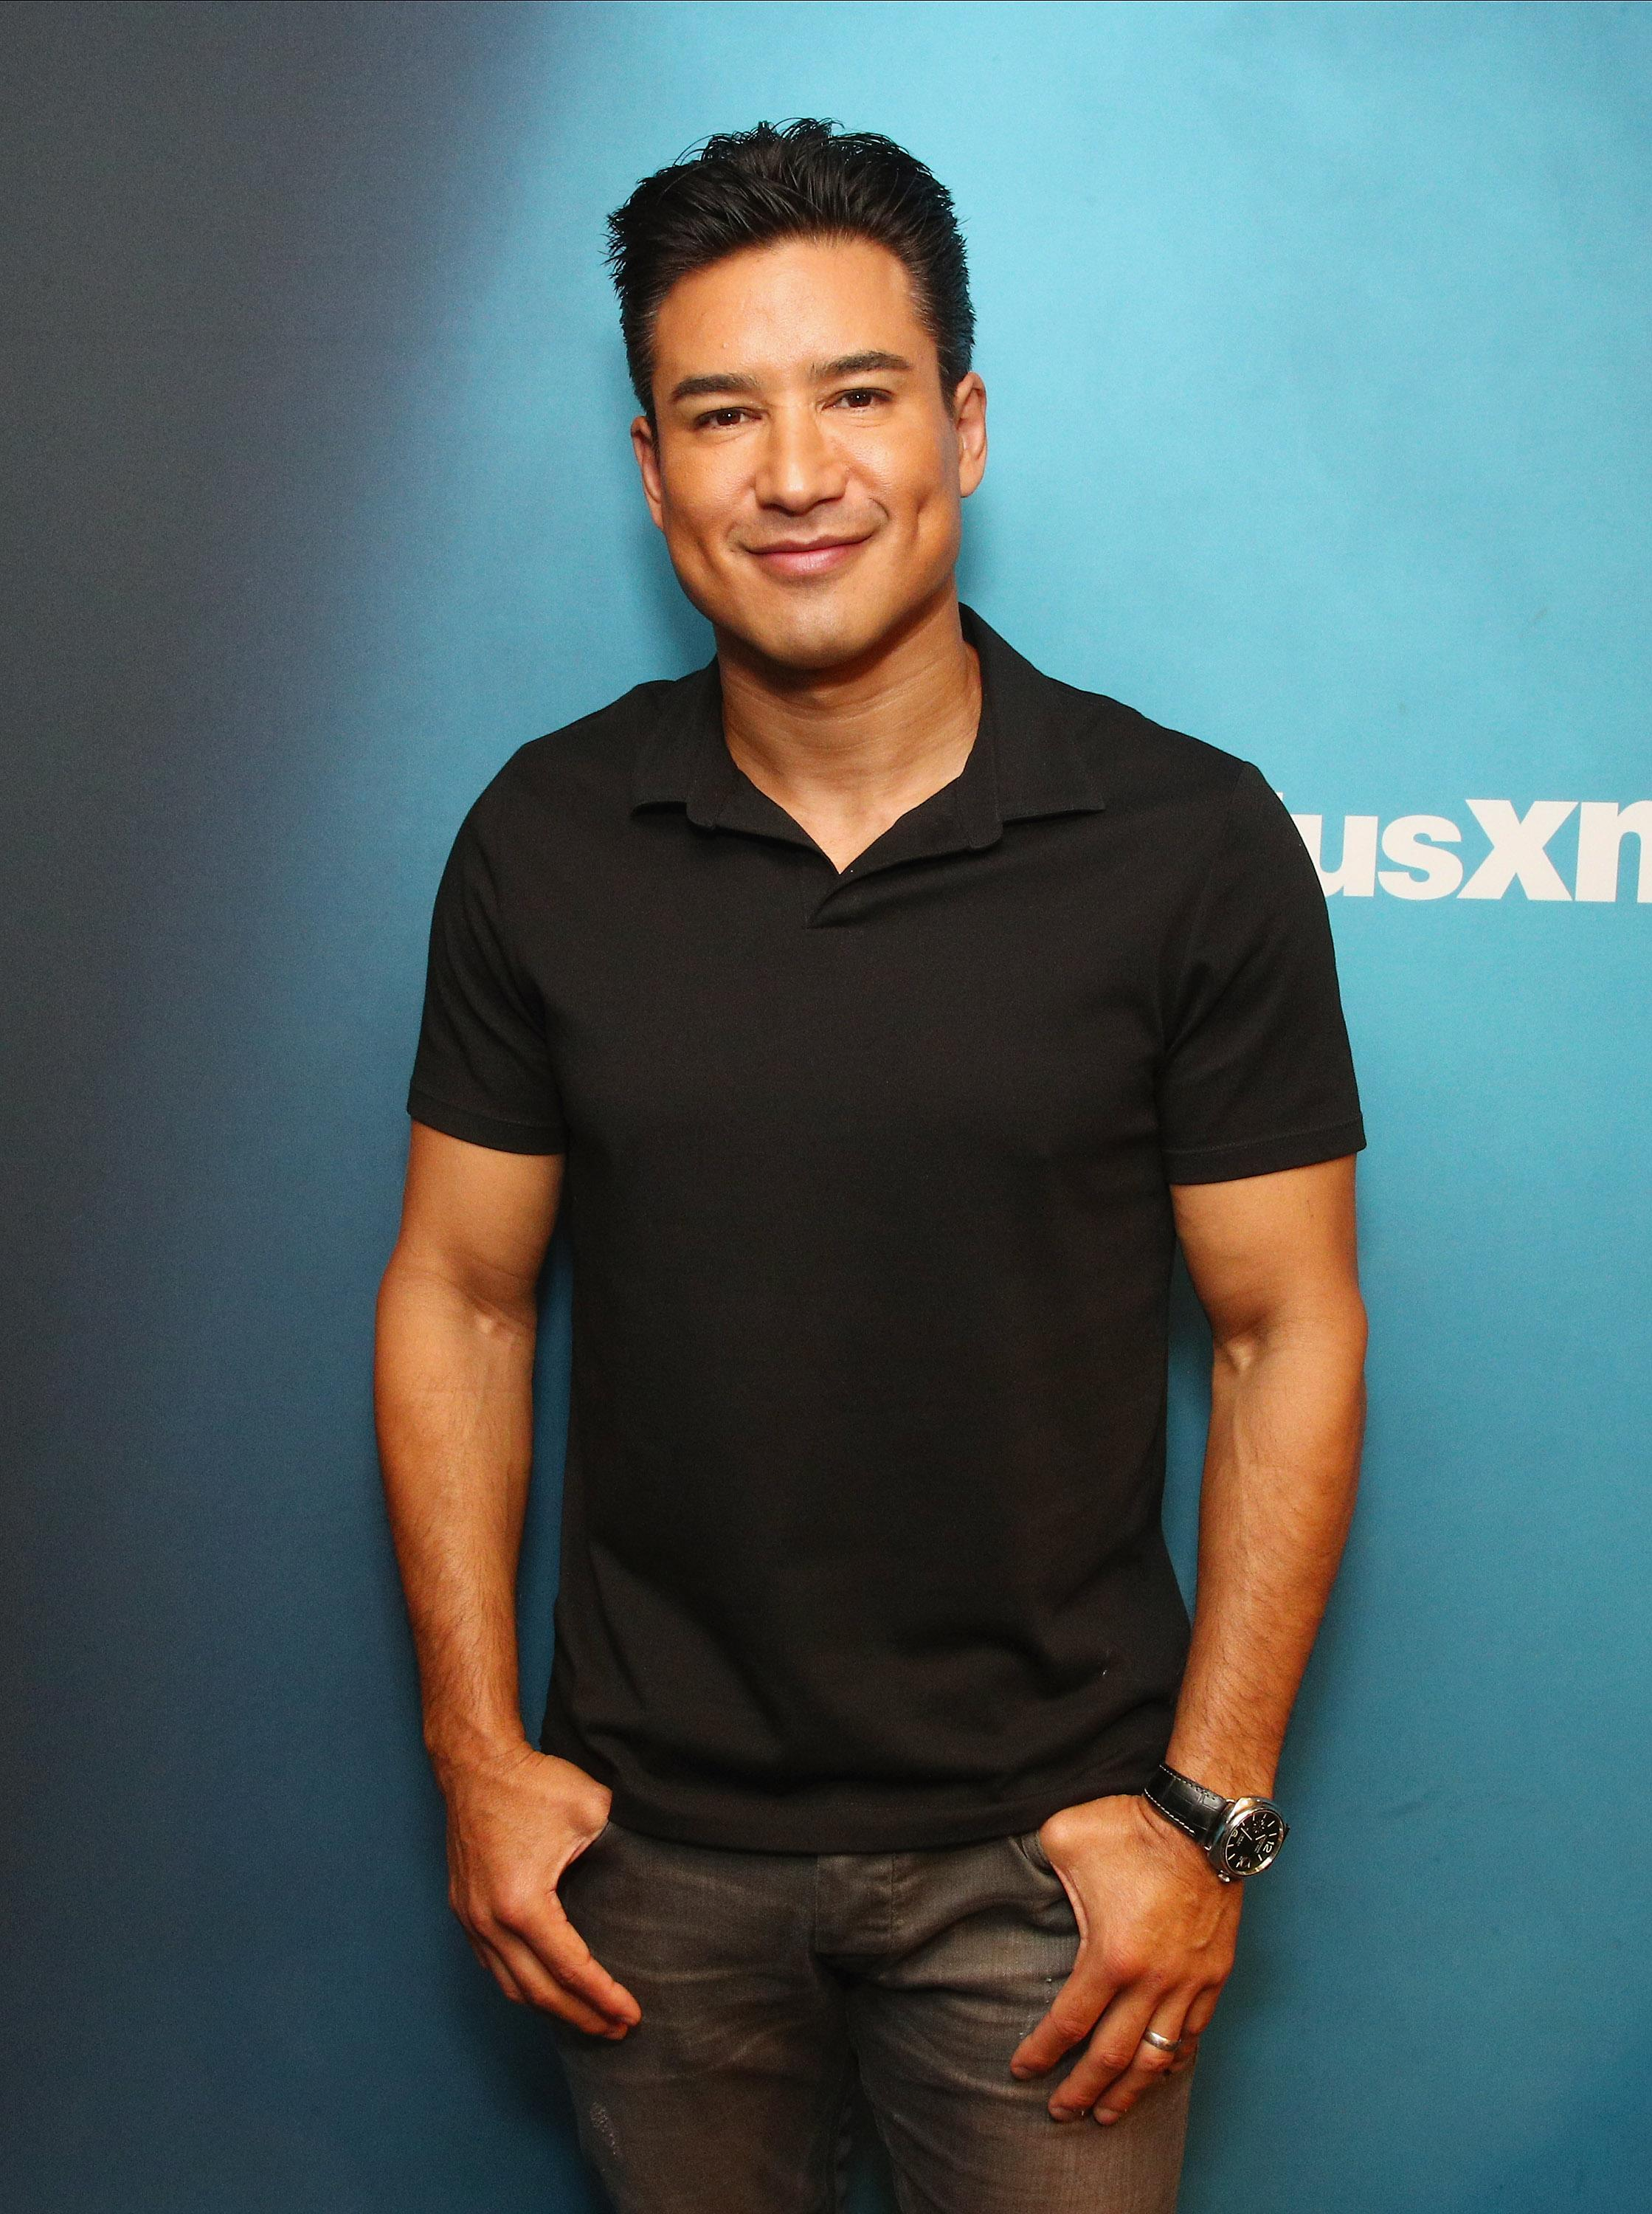 Mario Lopez Gets Backlash Over Comments On Trans Kids